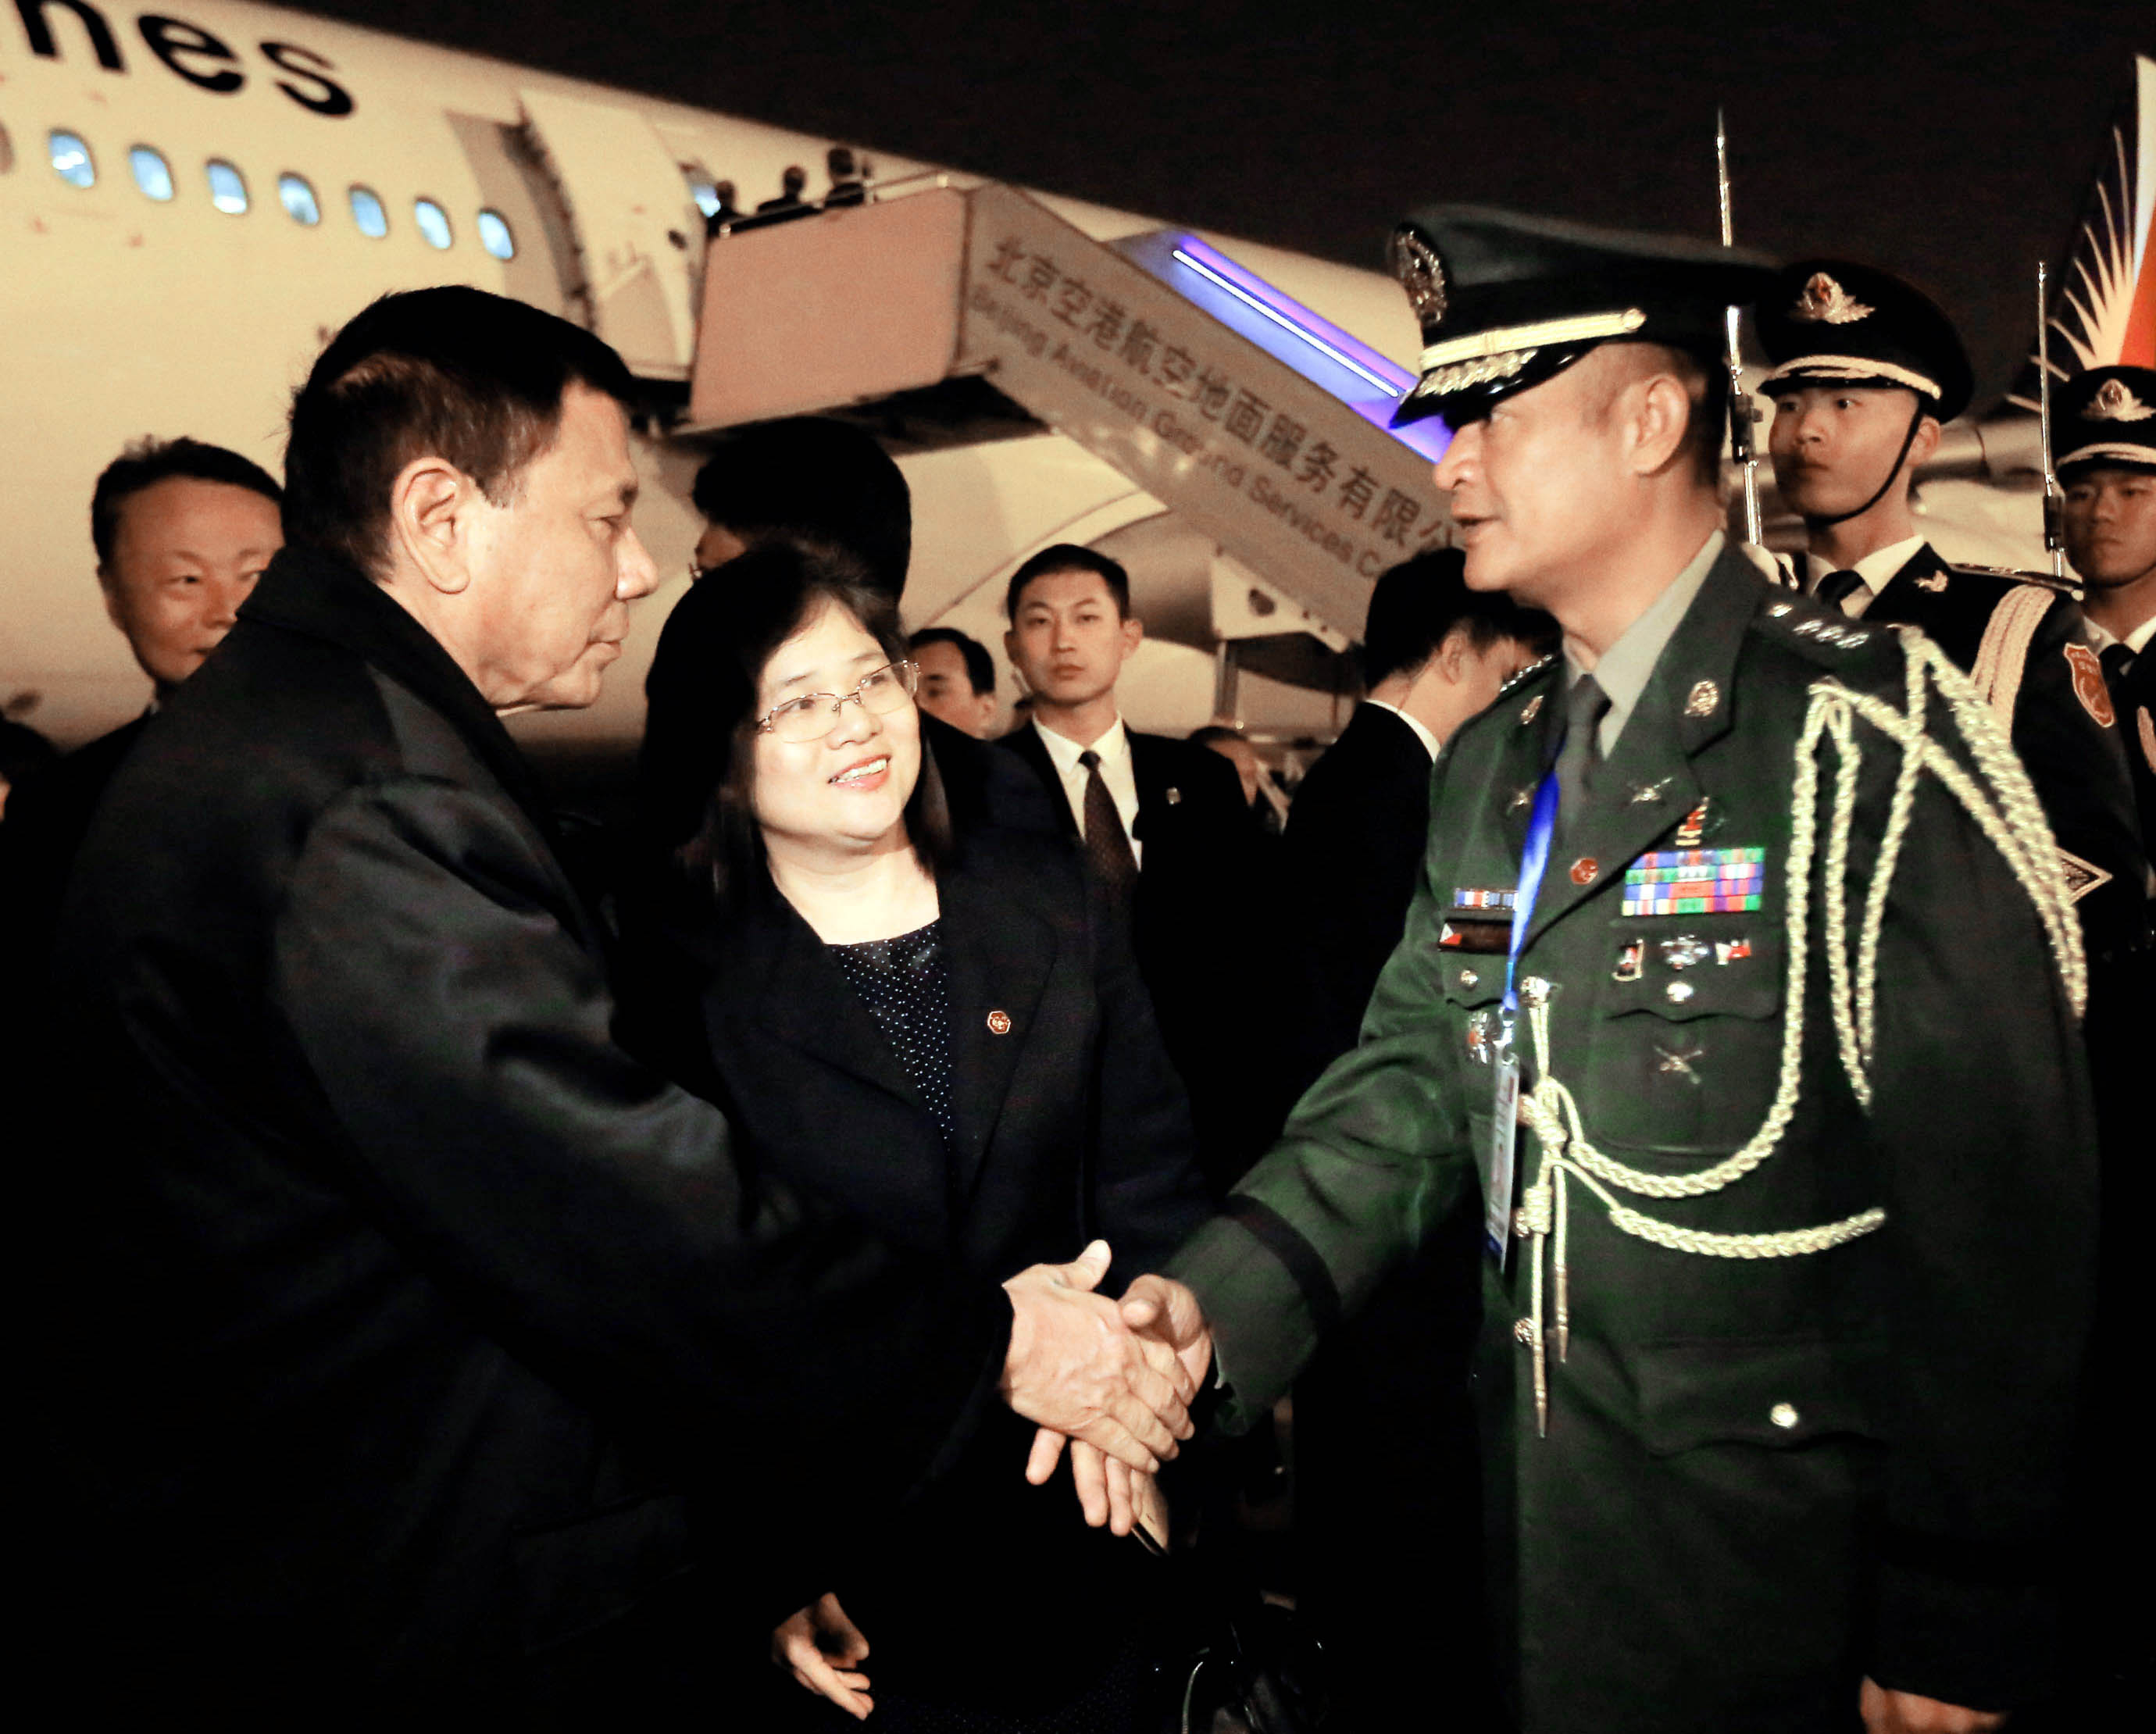 President Duterte shakes hands with a Chinese military official: President Rodrigo R. Duterte shakes hands with a Chinese military official upon his arrival at the Beijing Capital International Airport on Monday (Oct. 17, 2016). (PNA photo by Toto Lozano/PPD/PNA)